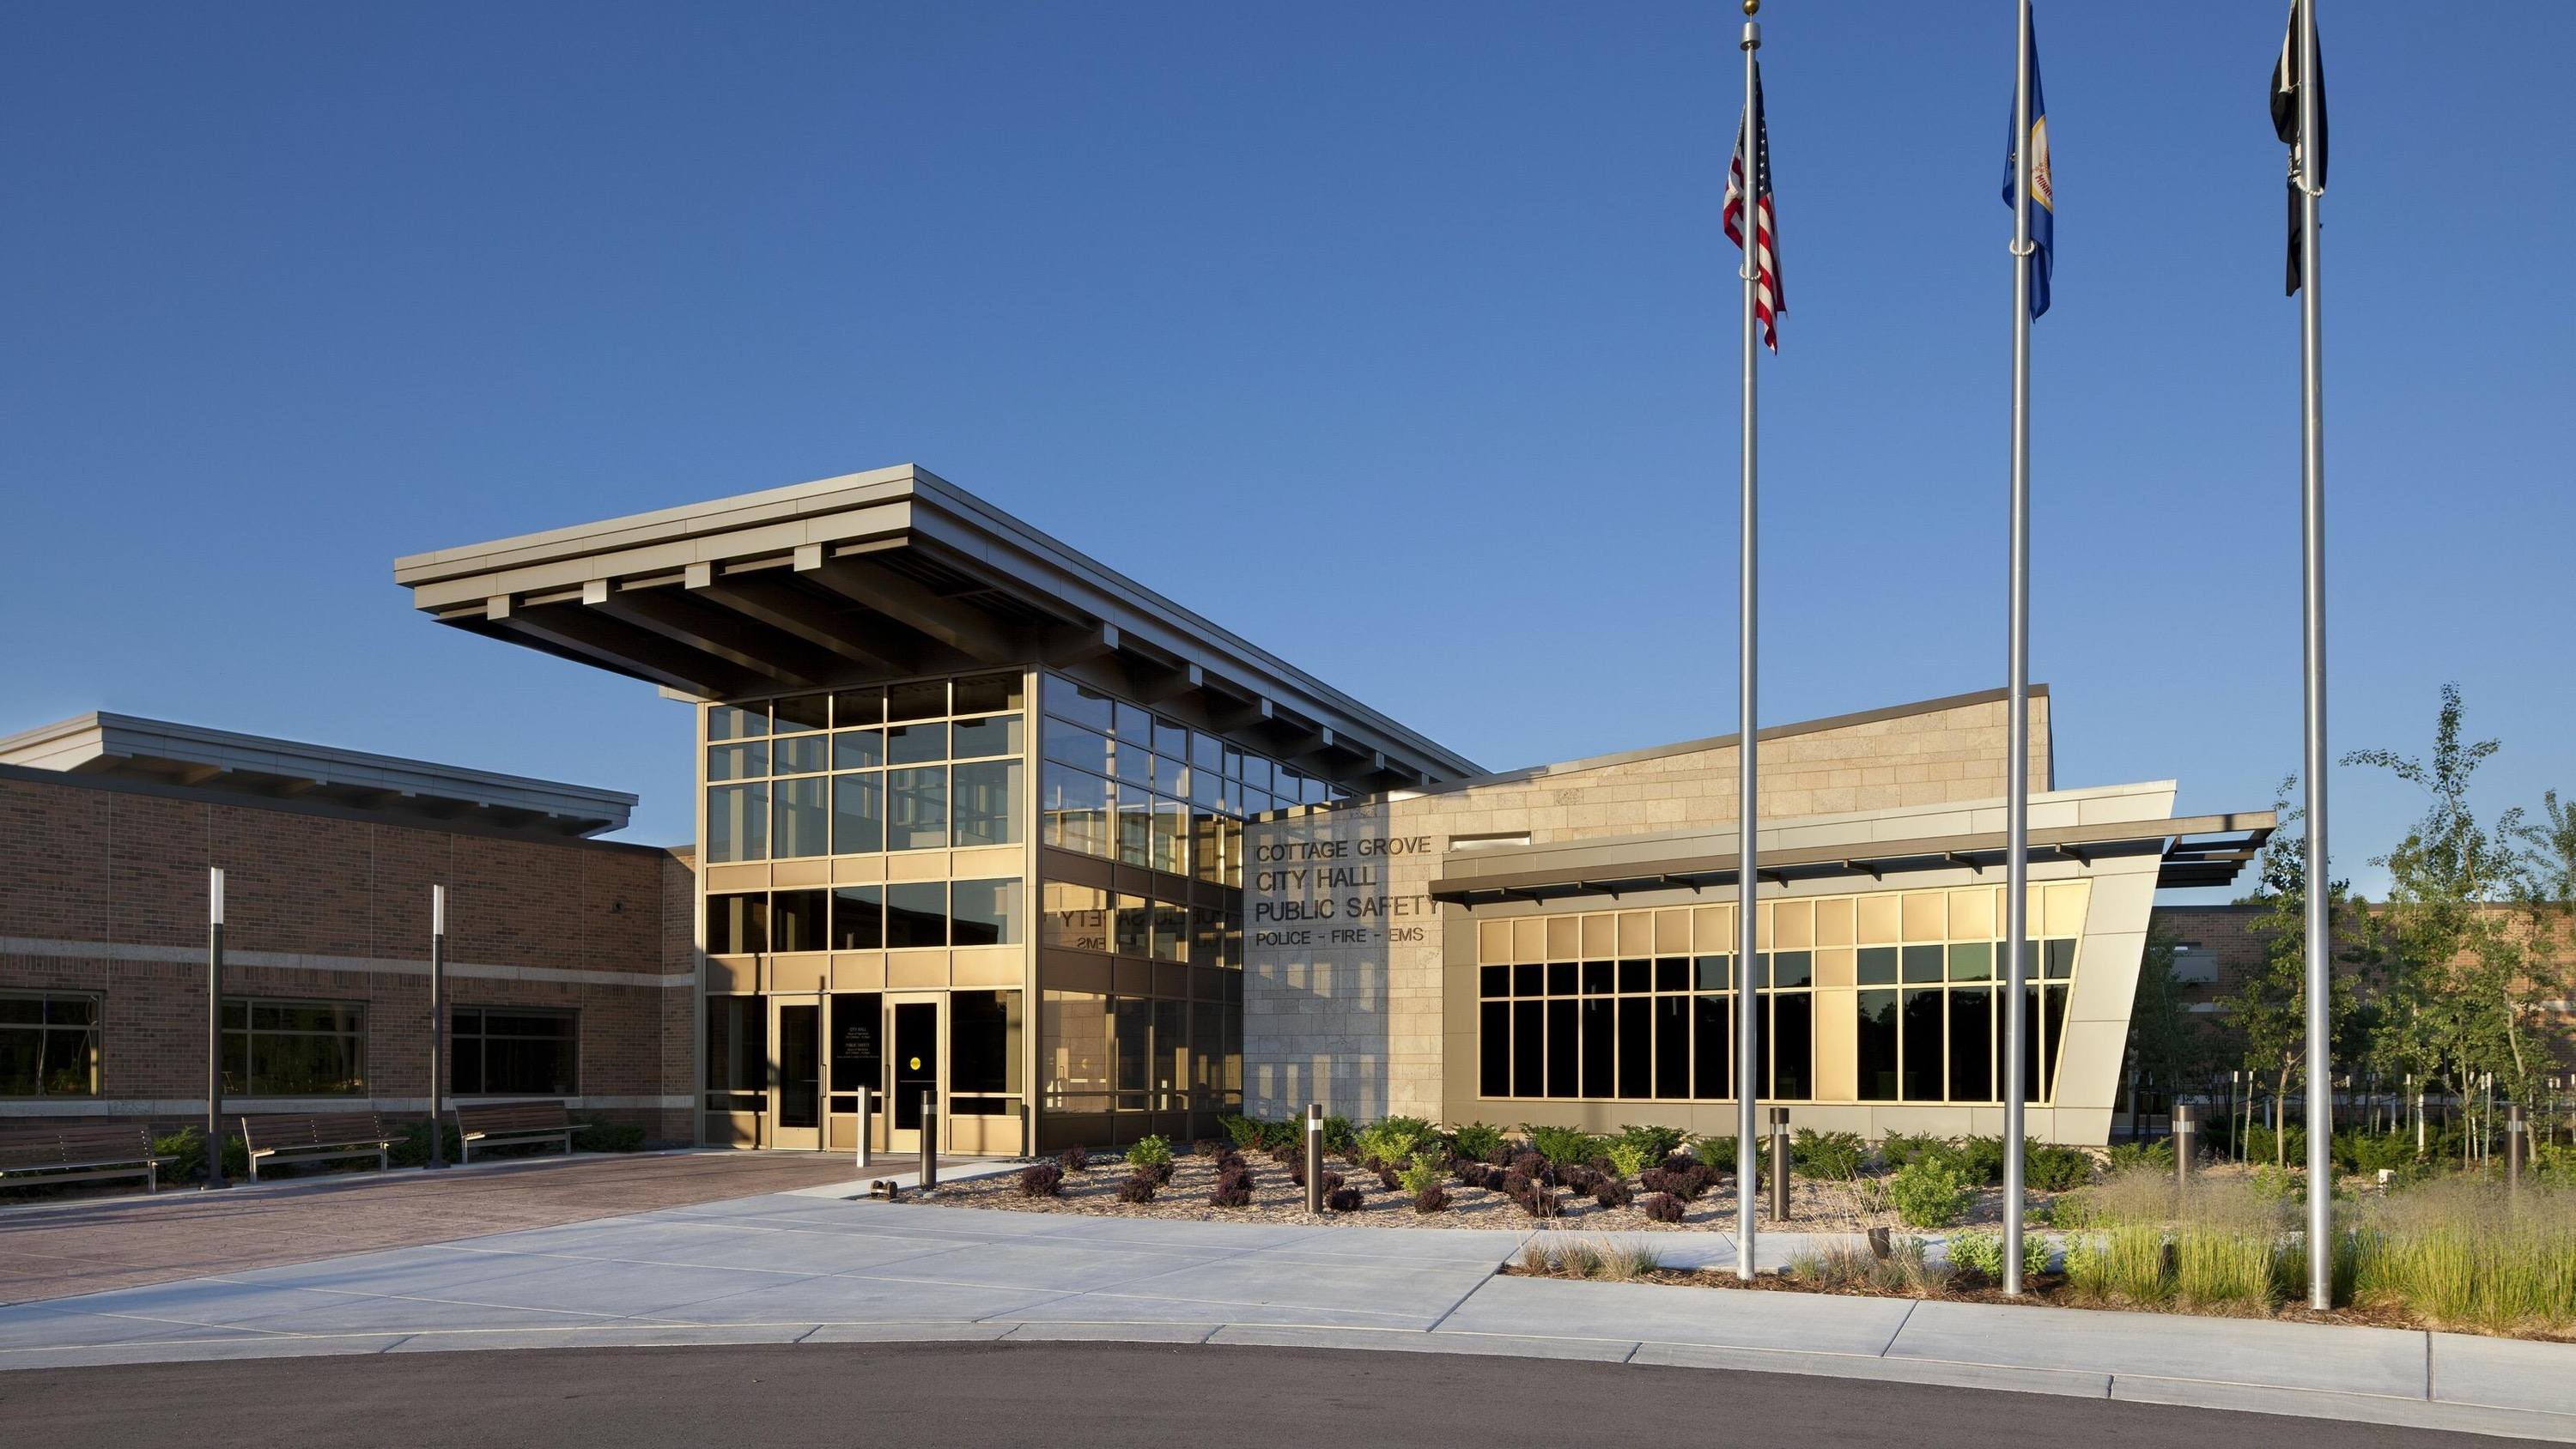 Cottage Grove Public Safety City Hall